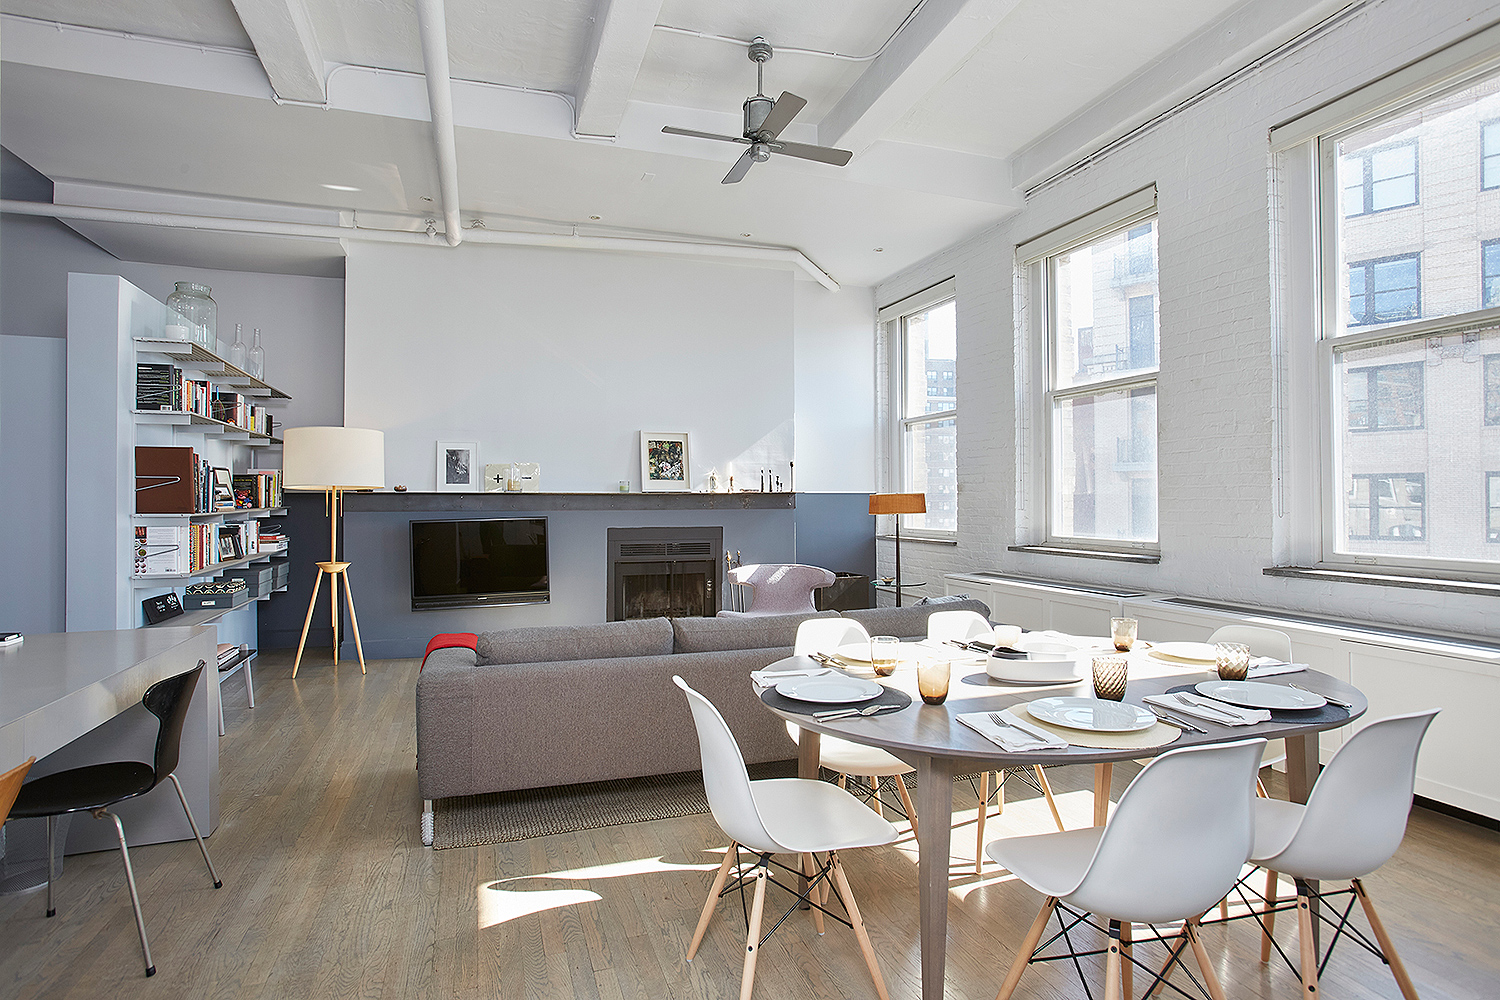 Alan Rickman S Nyc Apartment Listed For 1 7 Million People Com See what josh potter (joshuapotter) has discovered on pinterest, the world's biggest collection of loft apartments provide a well balance of affordability, privacy, spaciousness, and adaptability. people com